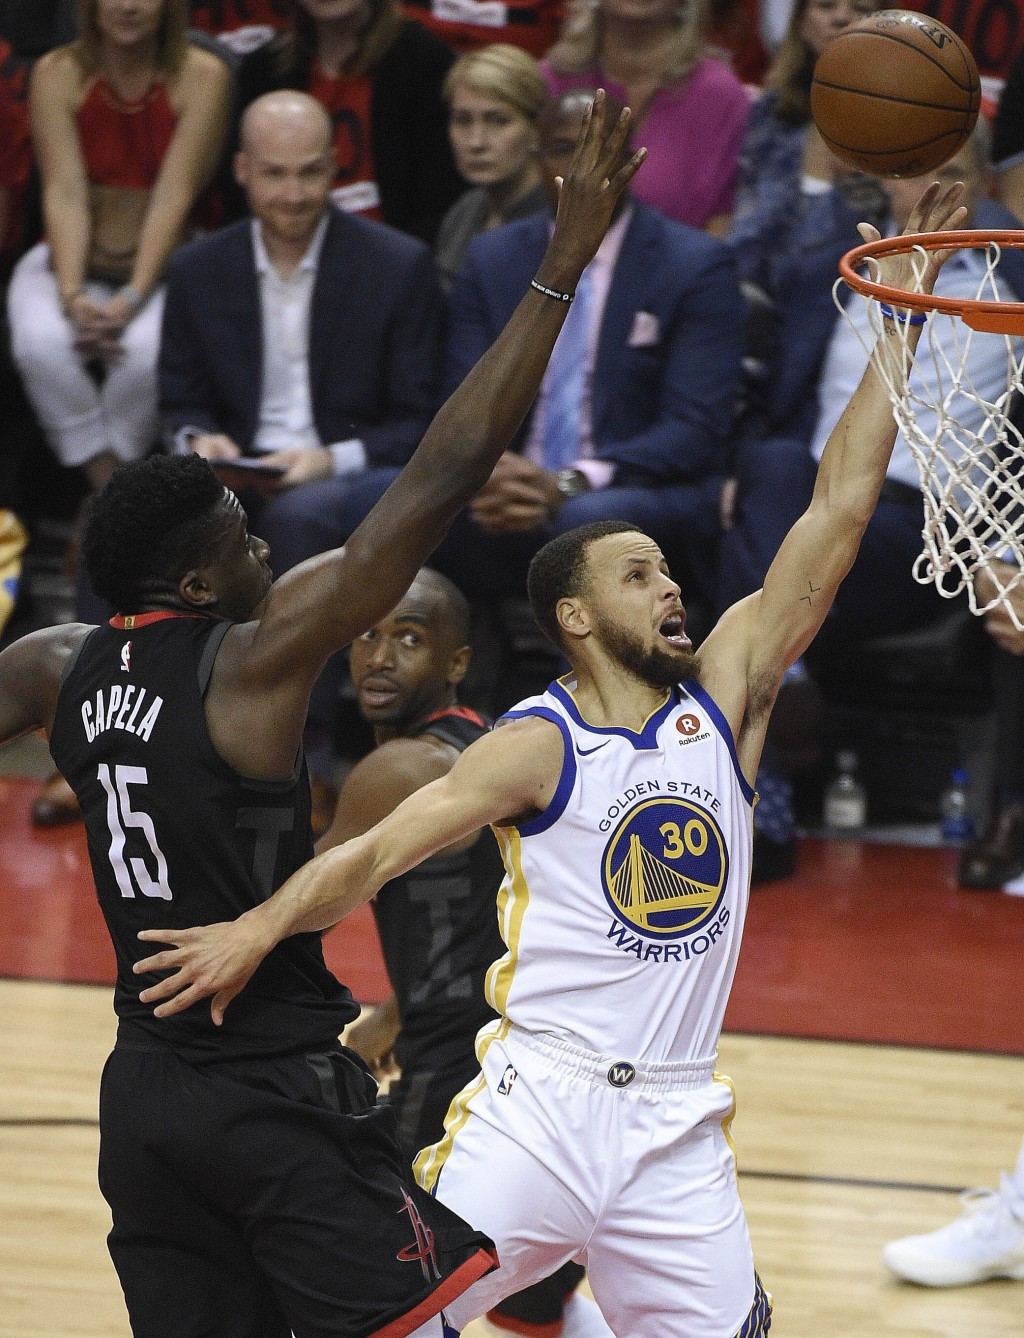 Golden State Warriors guard Stephen Curry (30) drives to the basket as Houston Rockets center Clint Capela (15) defends during the first half of Game